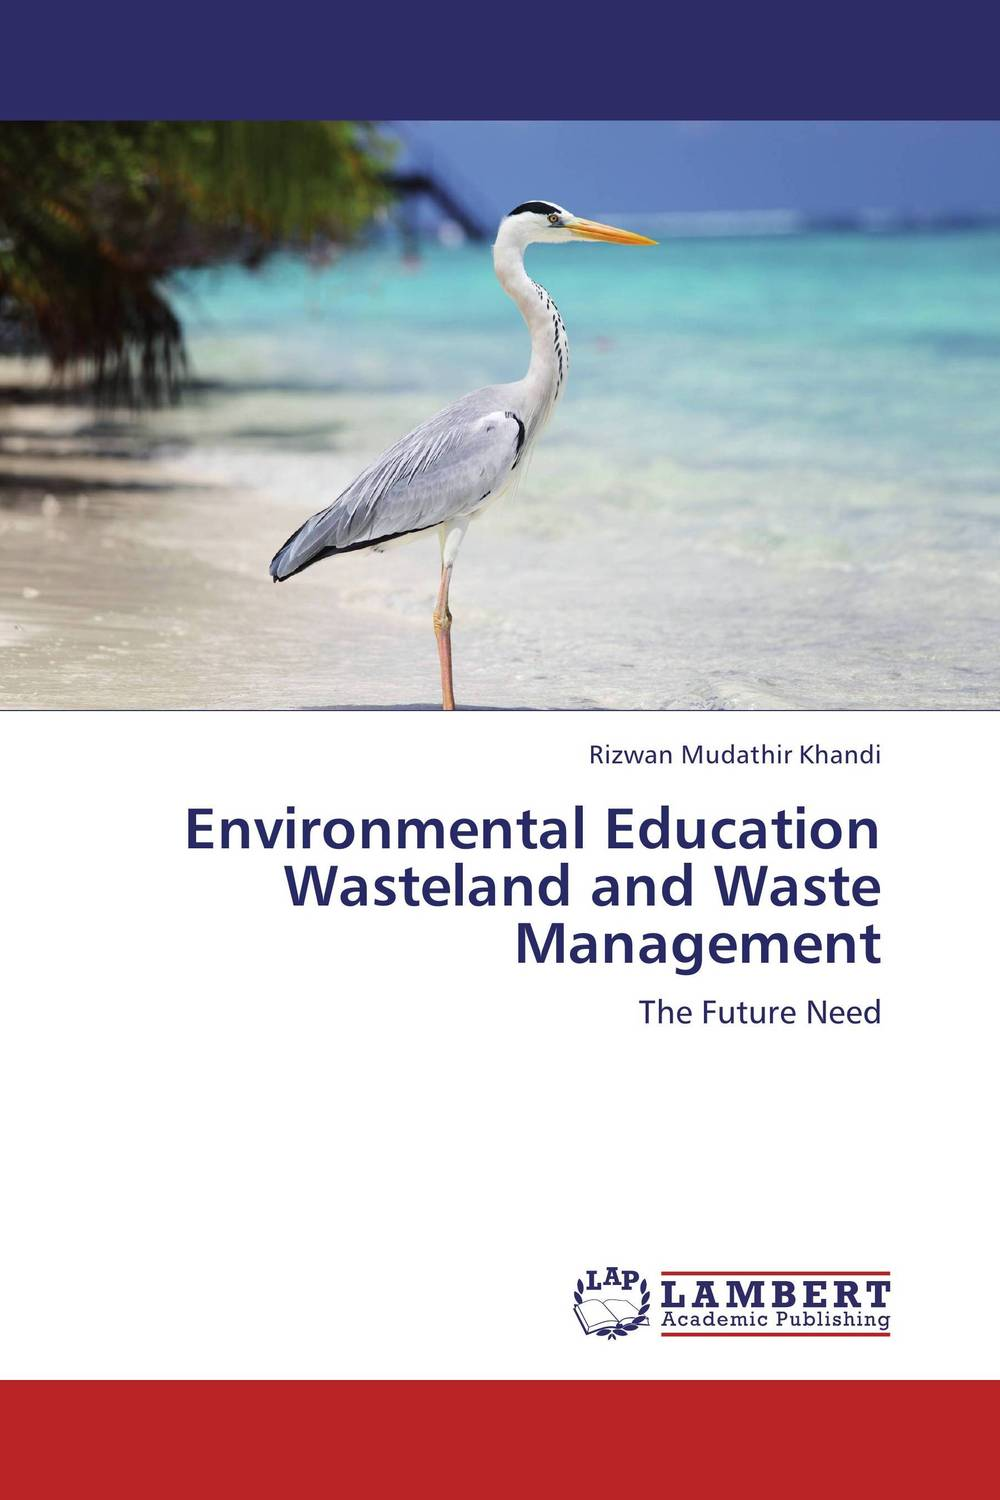 Environmental Education Wasteland and Waste Management